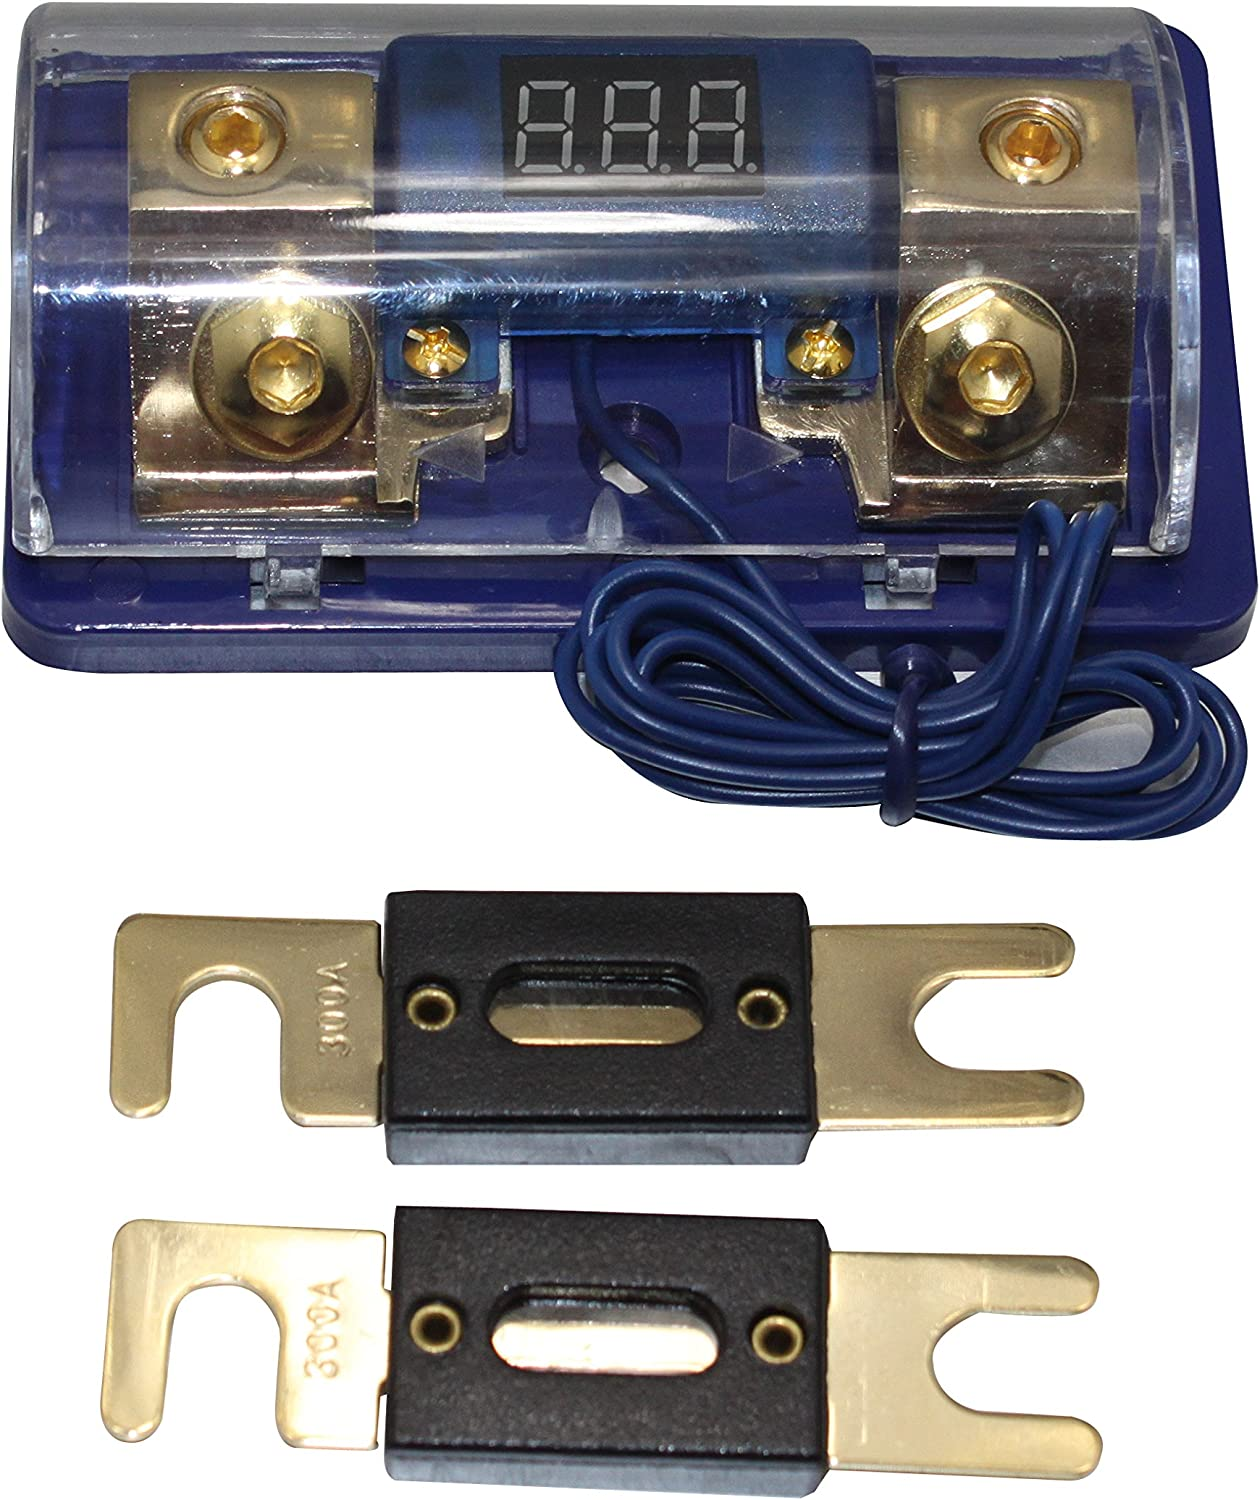 1 4 ga ANL Fused Distribution Block Dual ANL Fuse Holder 2 1//0 to